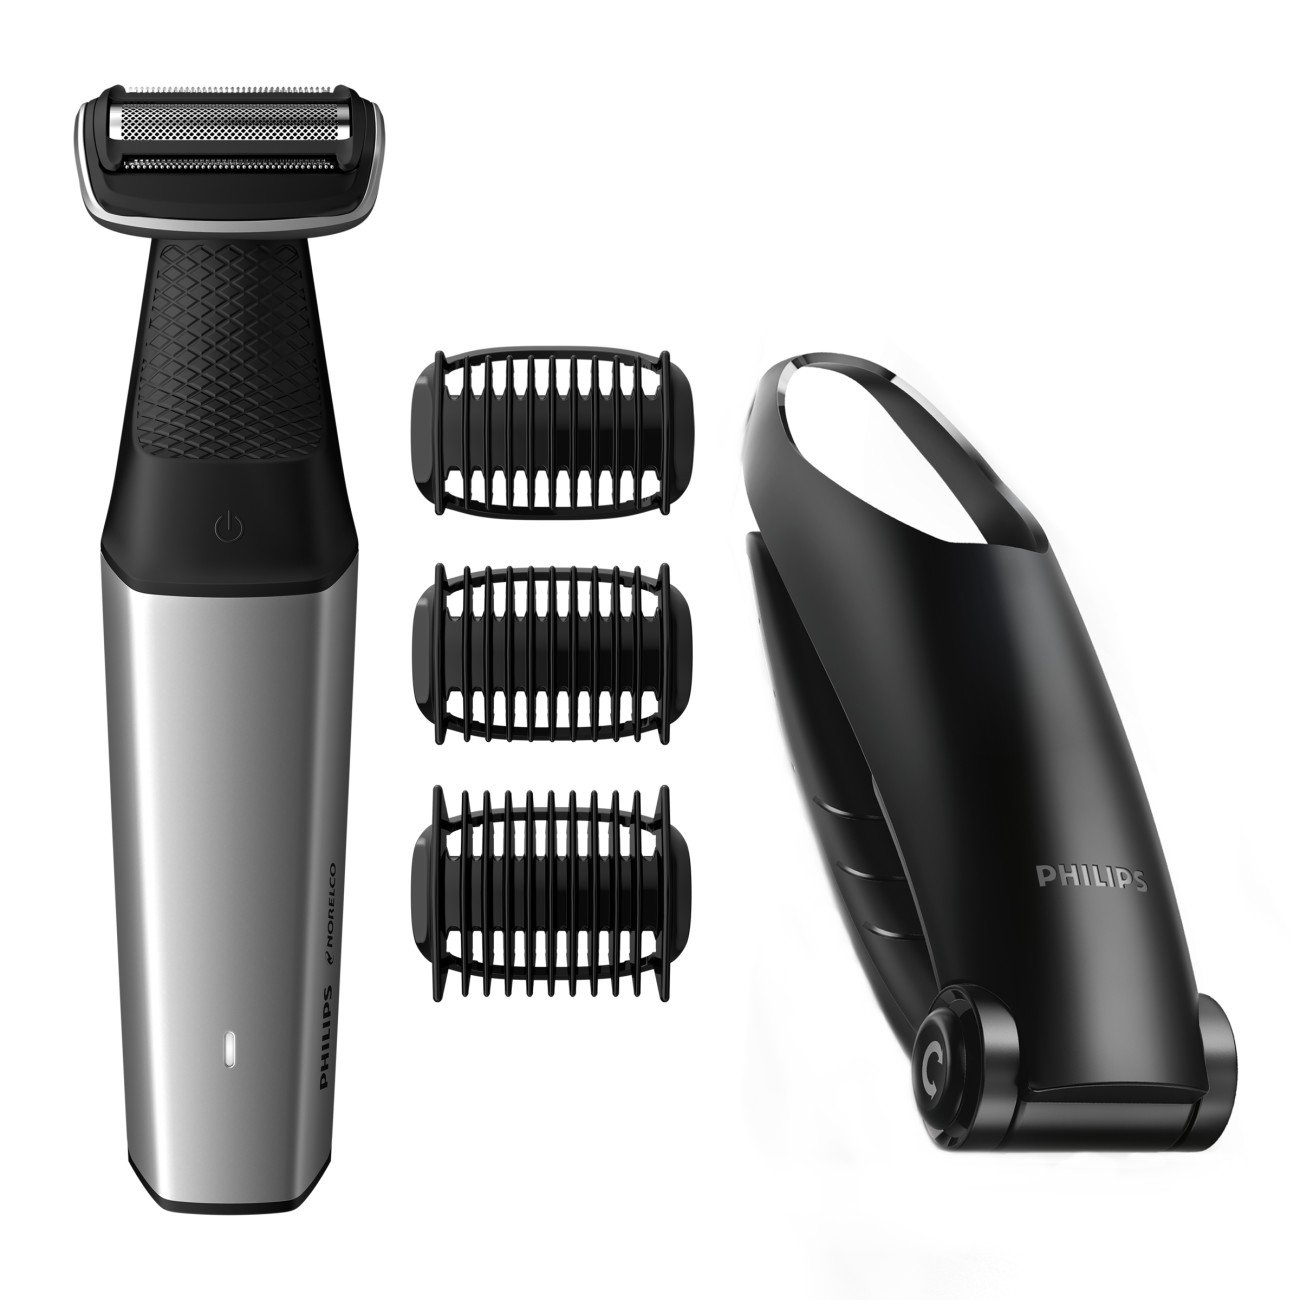 Philips Norelco Bodygroomer BG5025/49 - skin friendly, showerproof, back and body hair shaver and trimmer